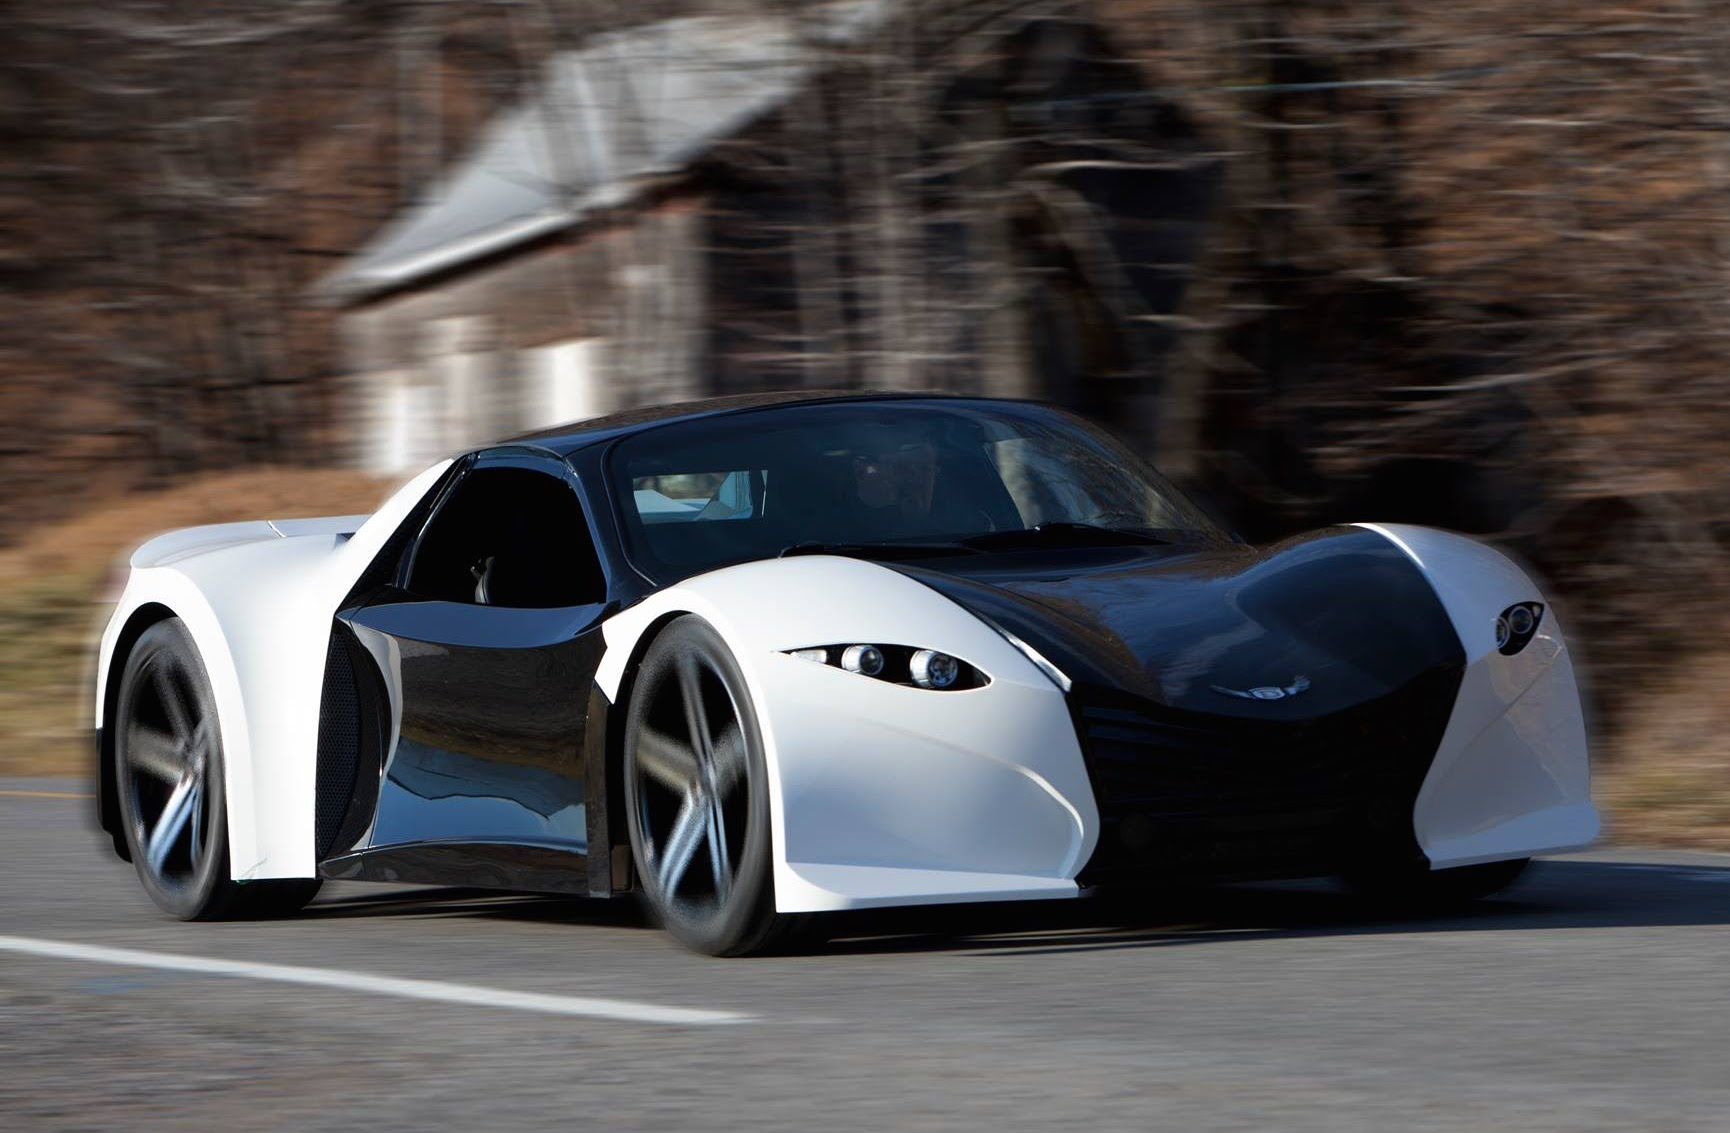 Tomahawk Electric Supercar